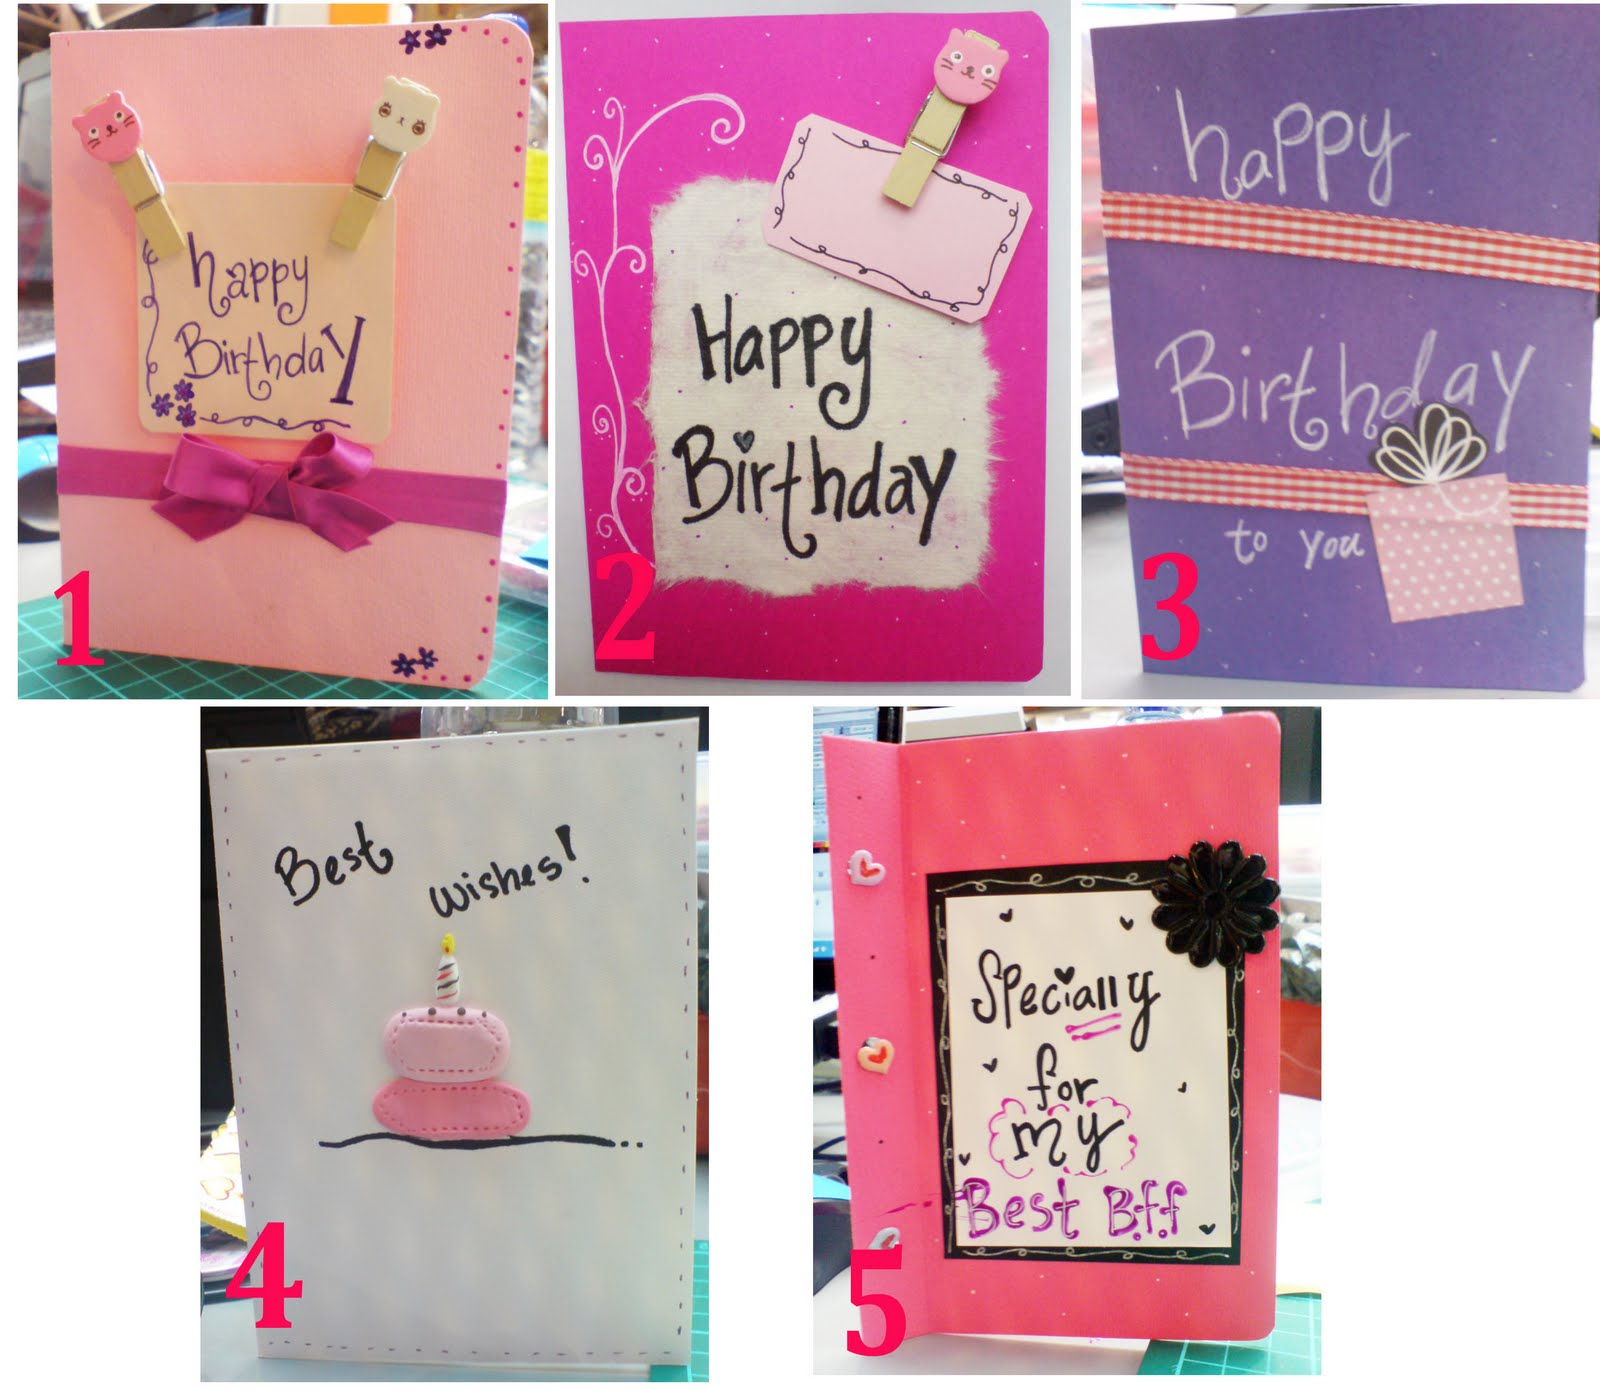 Elegant a birthday card graphics laughterisaleap jcvk inspire birthday card for girl friend bookmarktalkfo Gallery